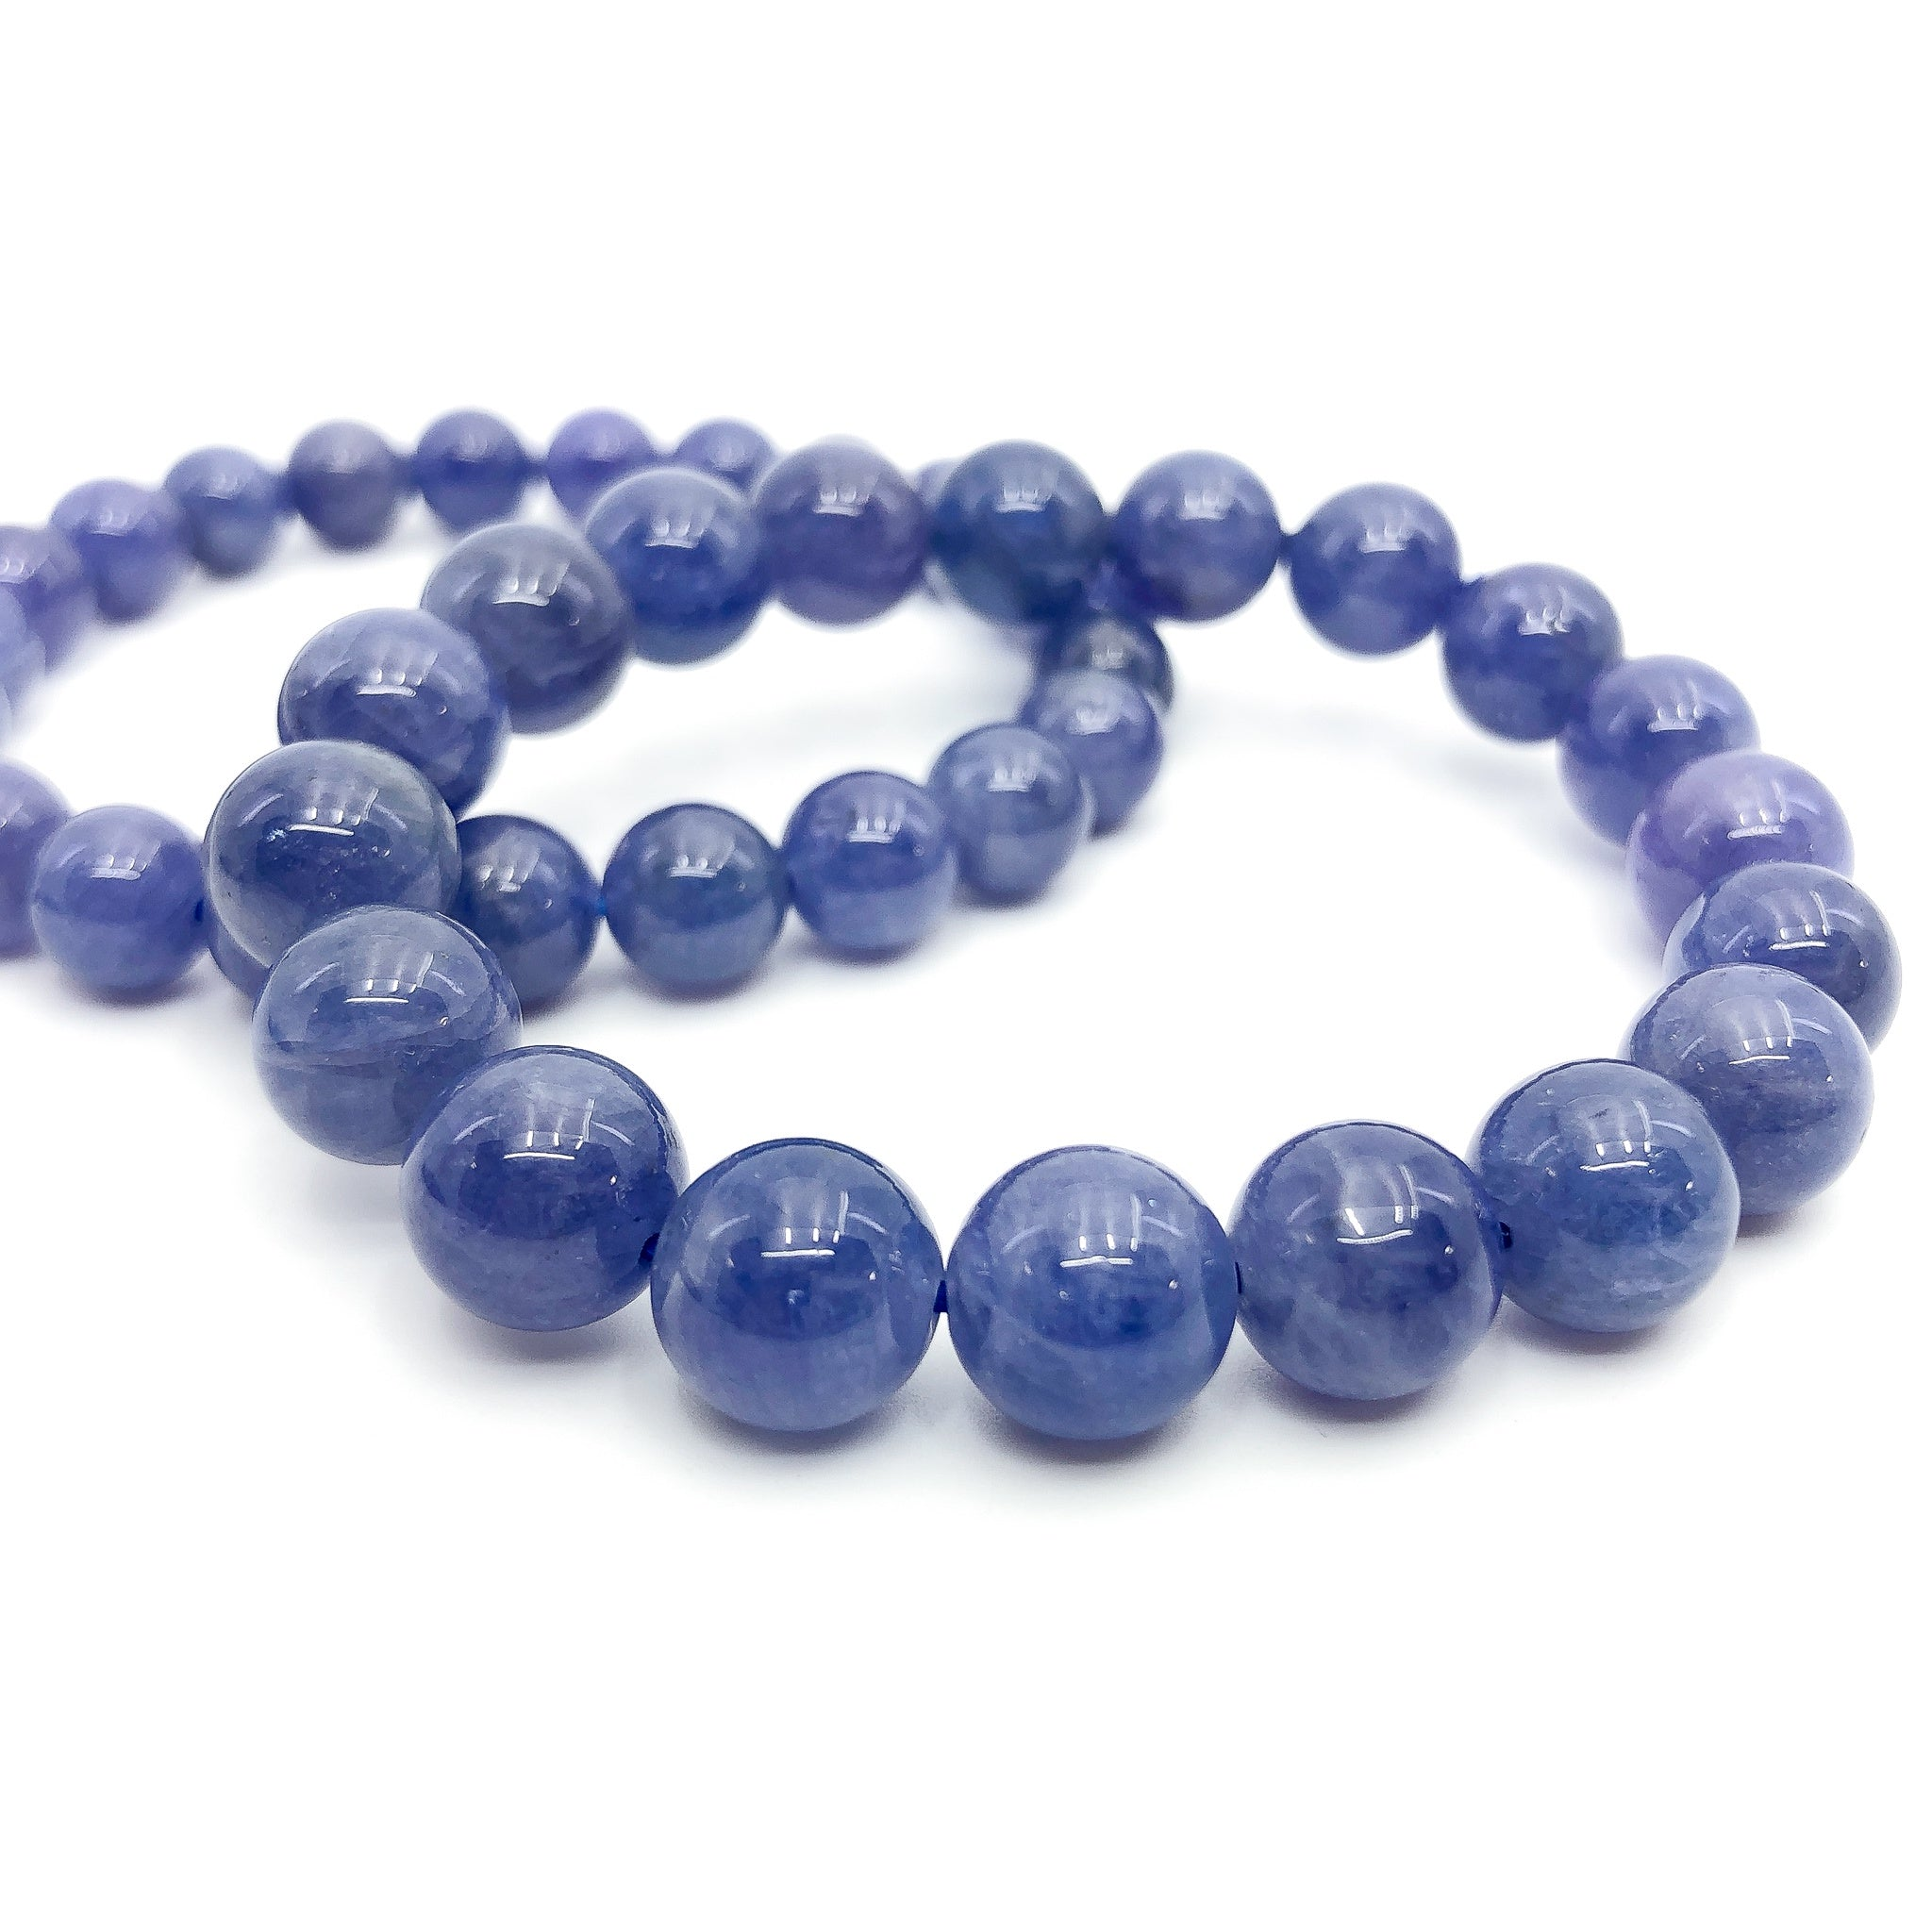 Tanzanite Stretchy Cord Bracelet - 9mm Smooth Round